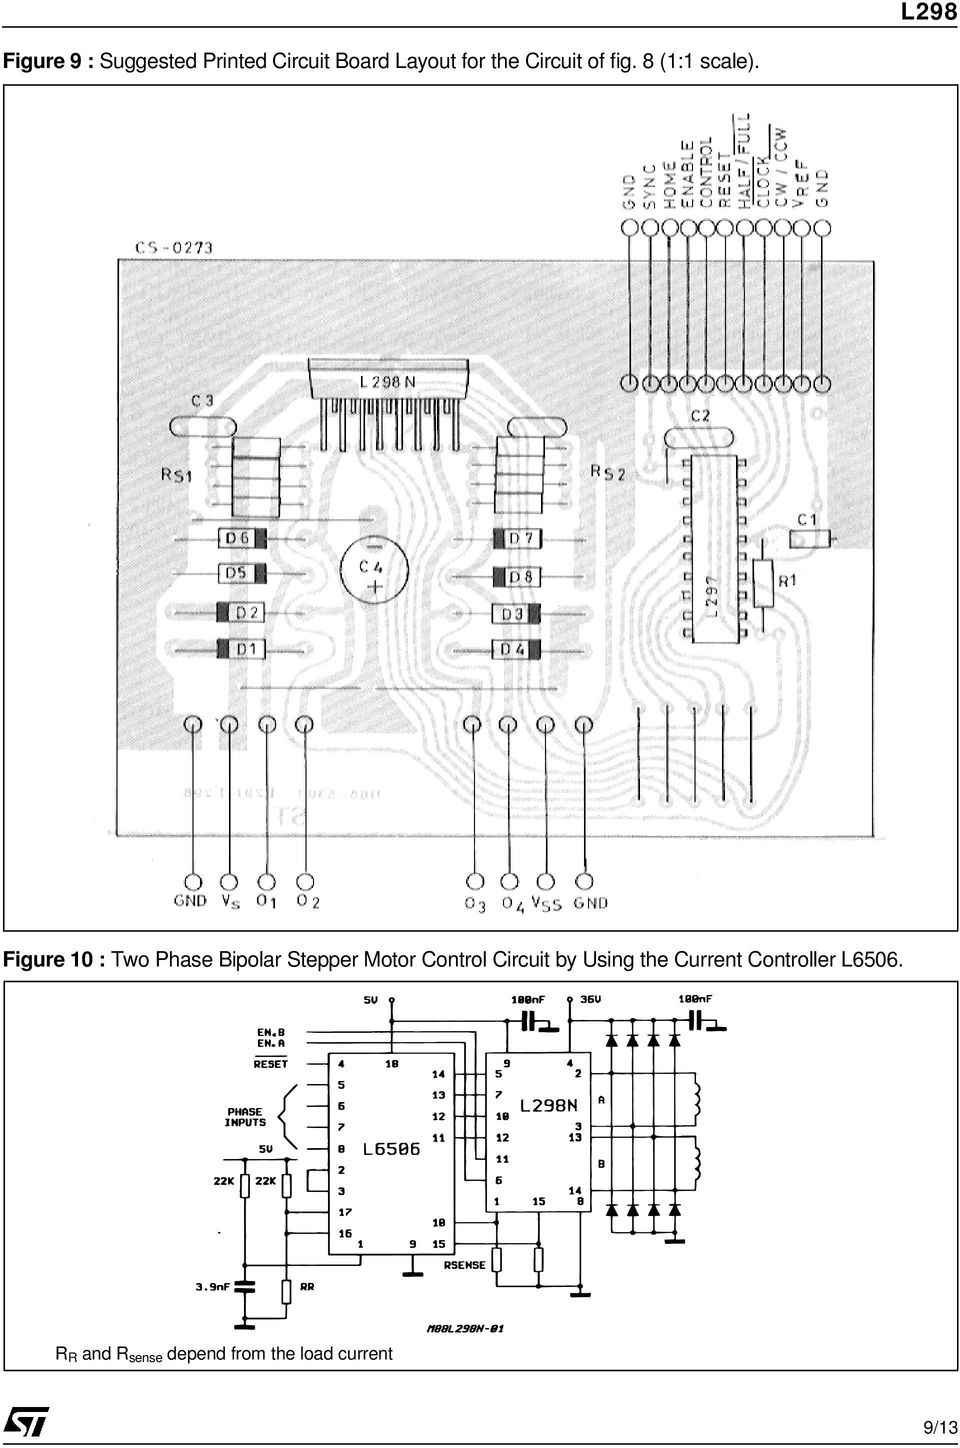 Figure 10 : Two Phase Bipolar Stepper Motor Control Circuit